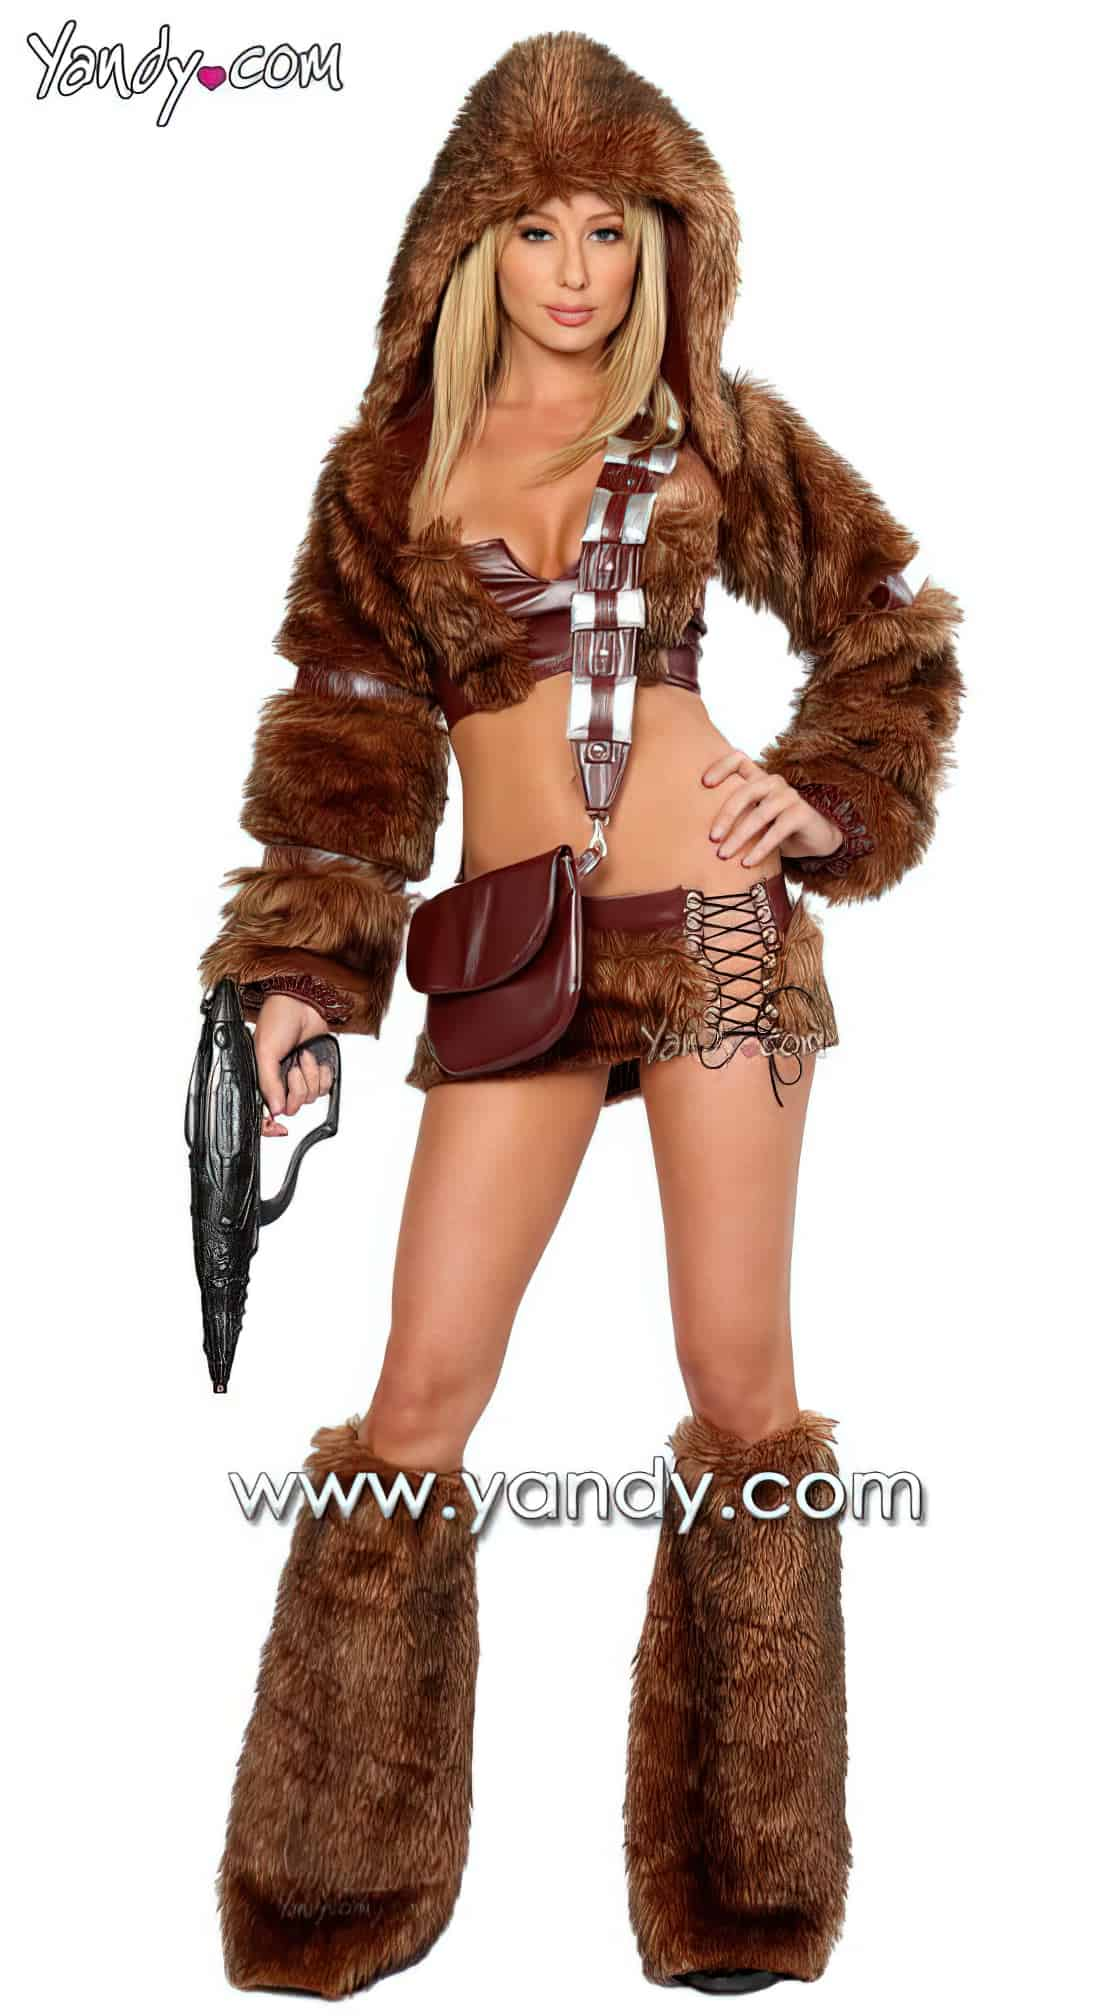 Sexy Chewbacca Costume4 e1288034807632 upscaled